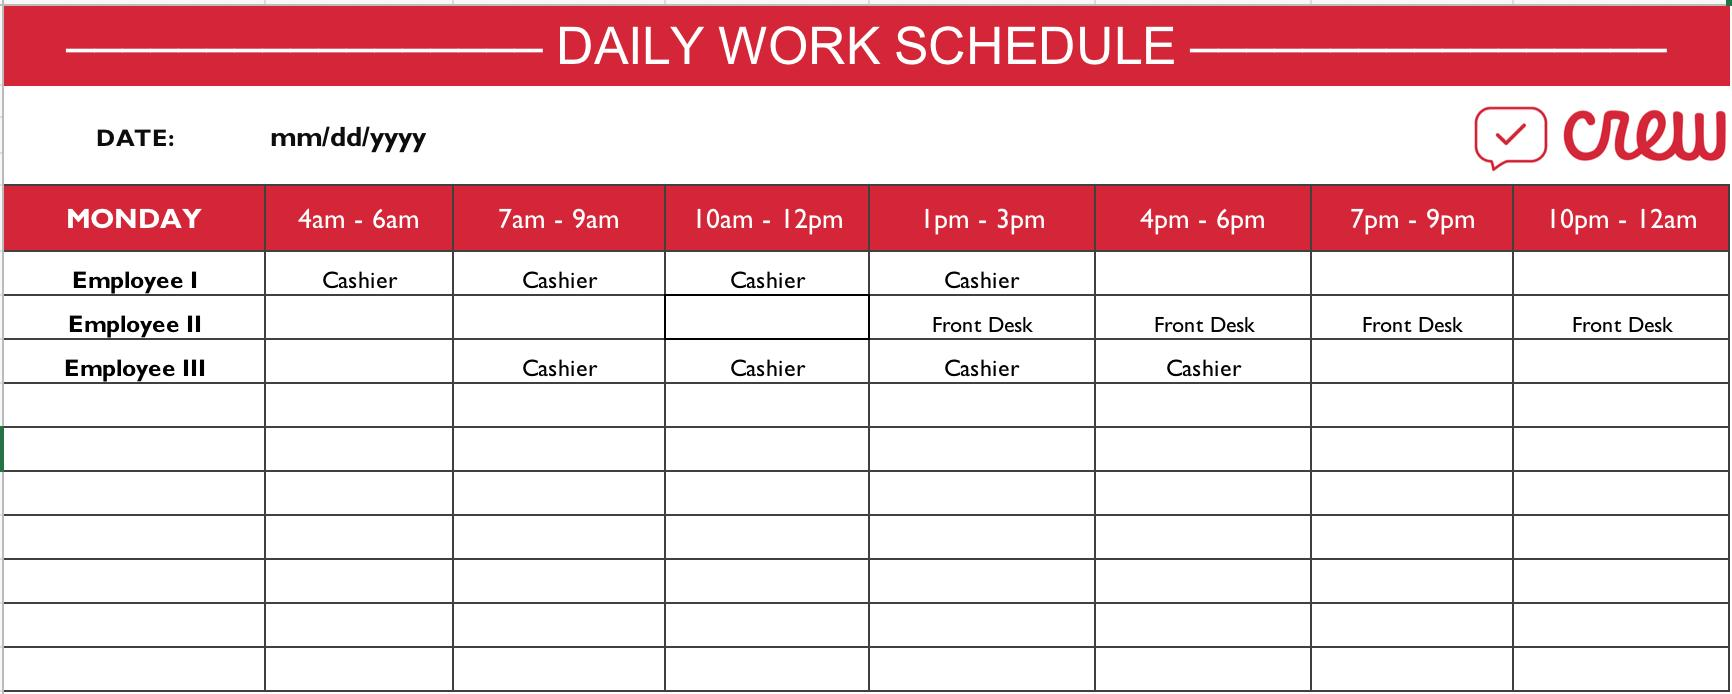 Daily Work Schedule Template Doc